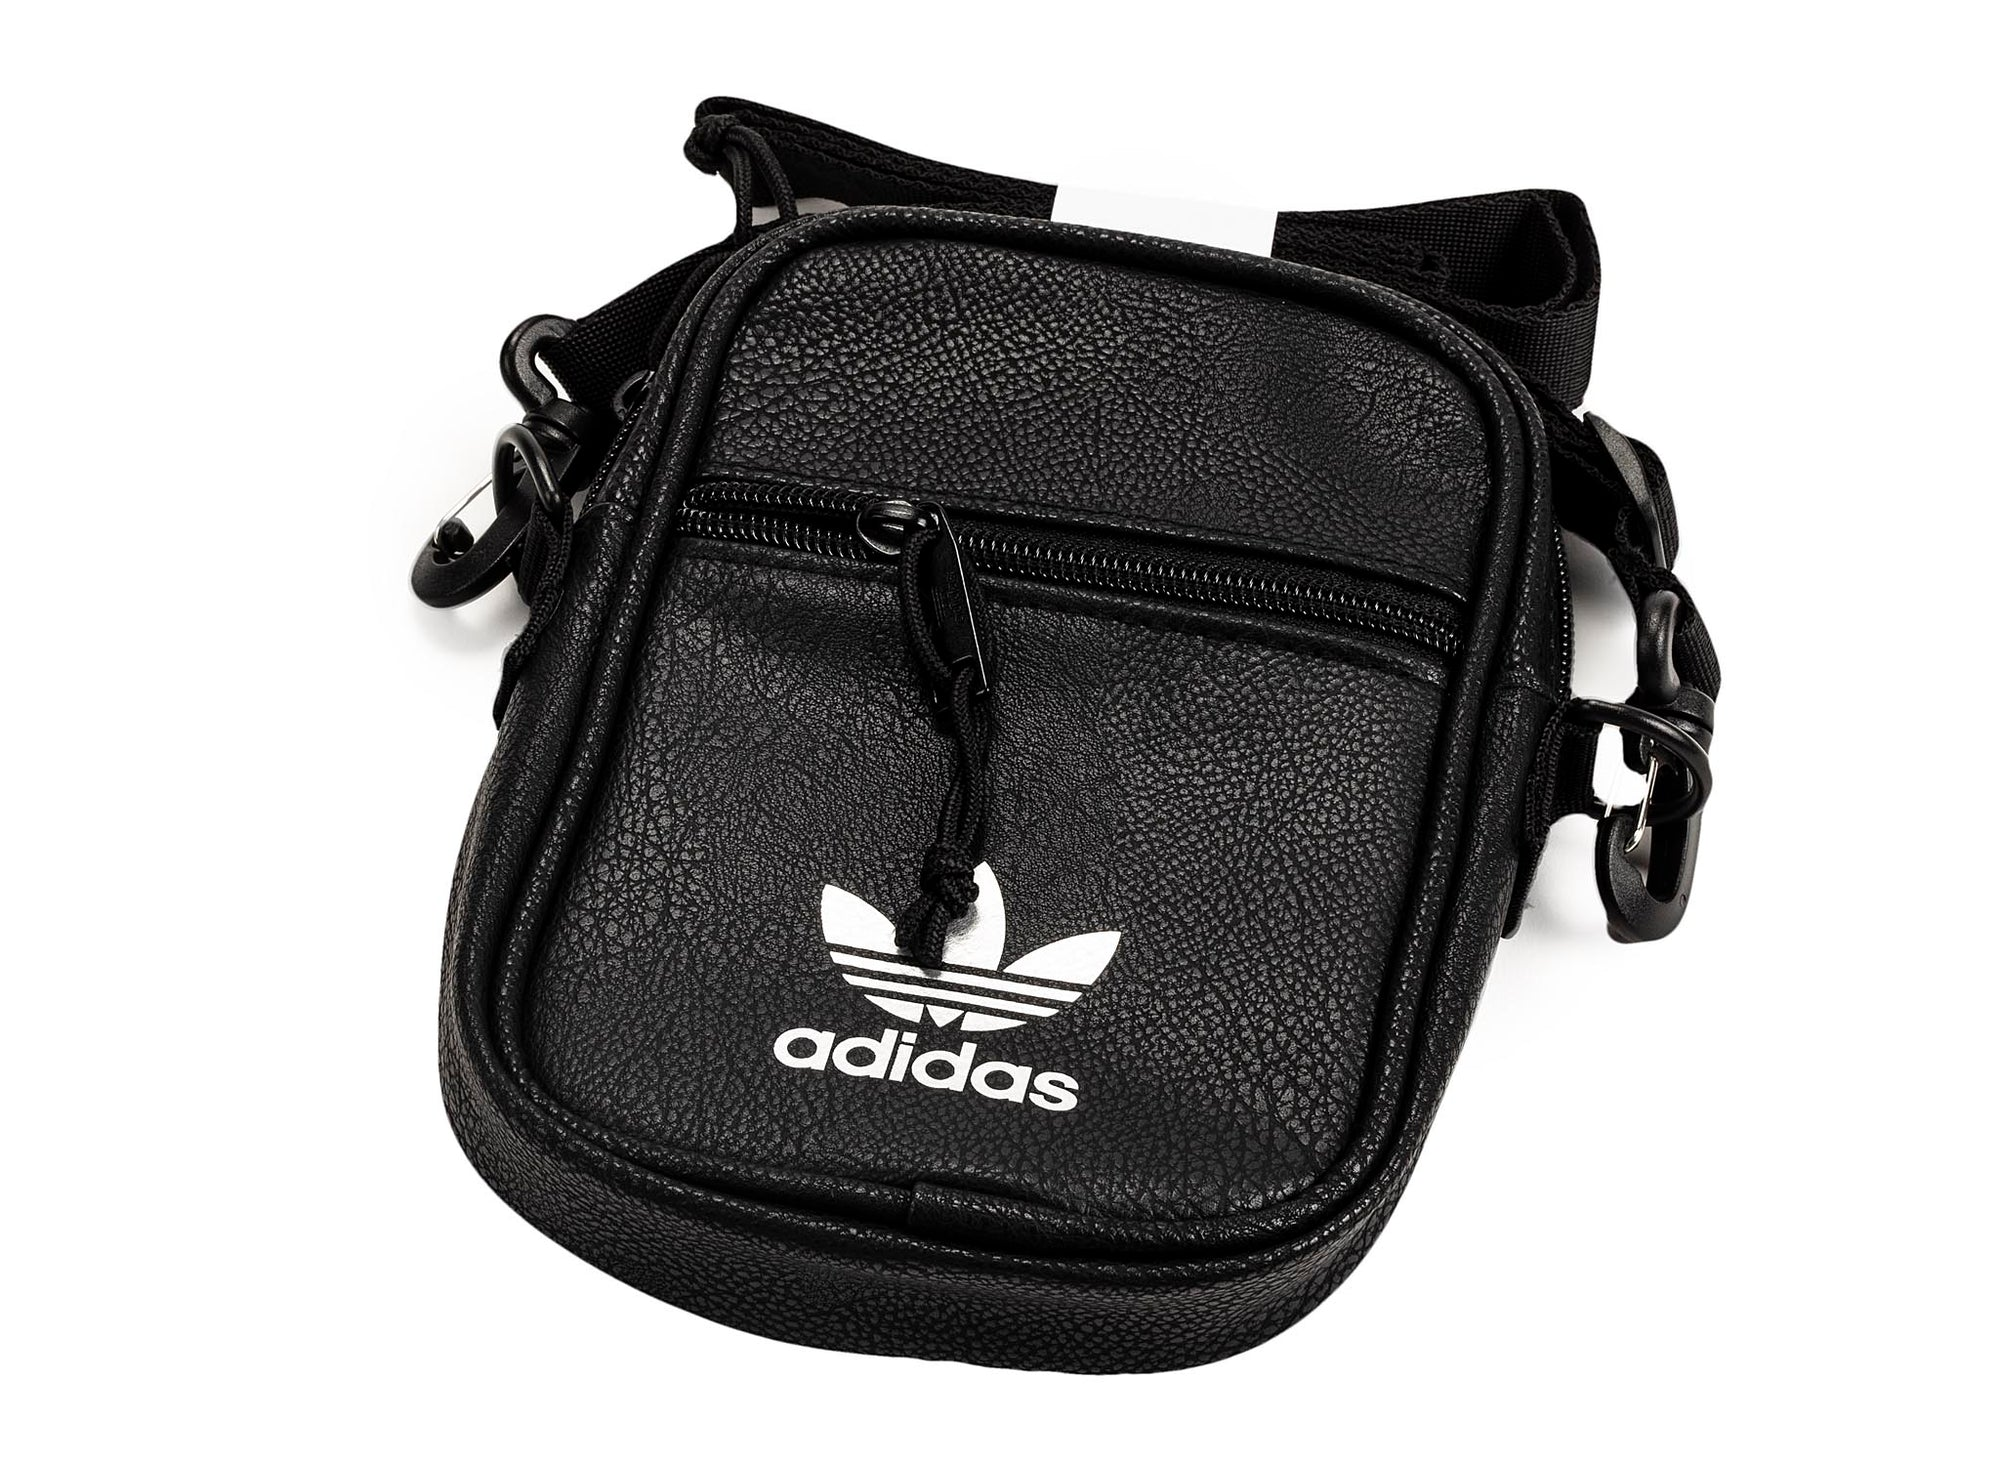 Adidas Festival Crossbody Bag 'Black'